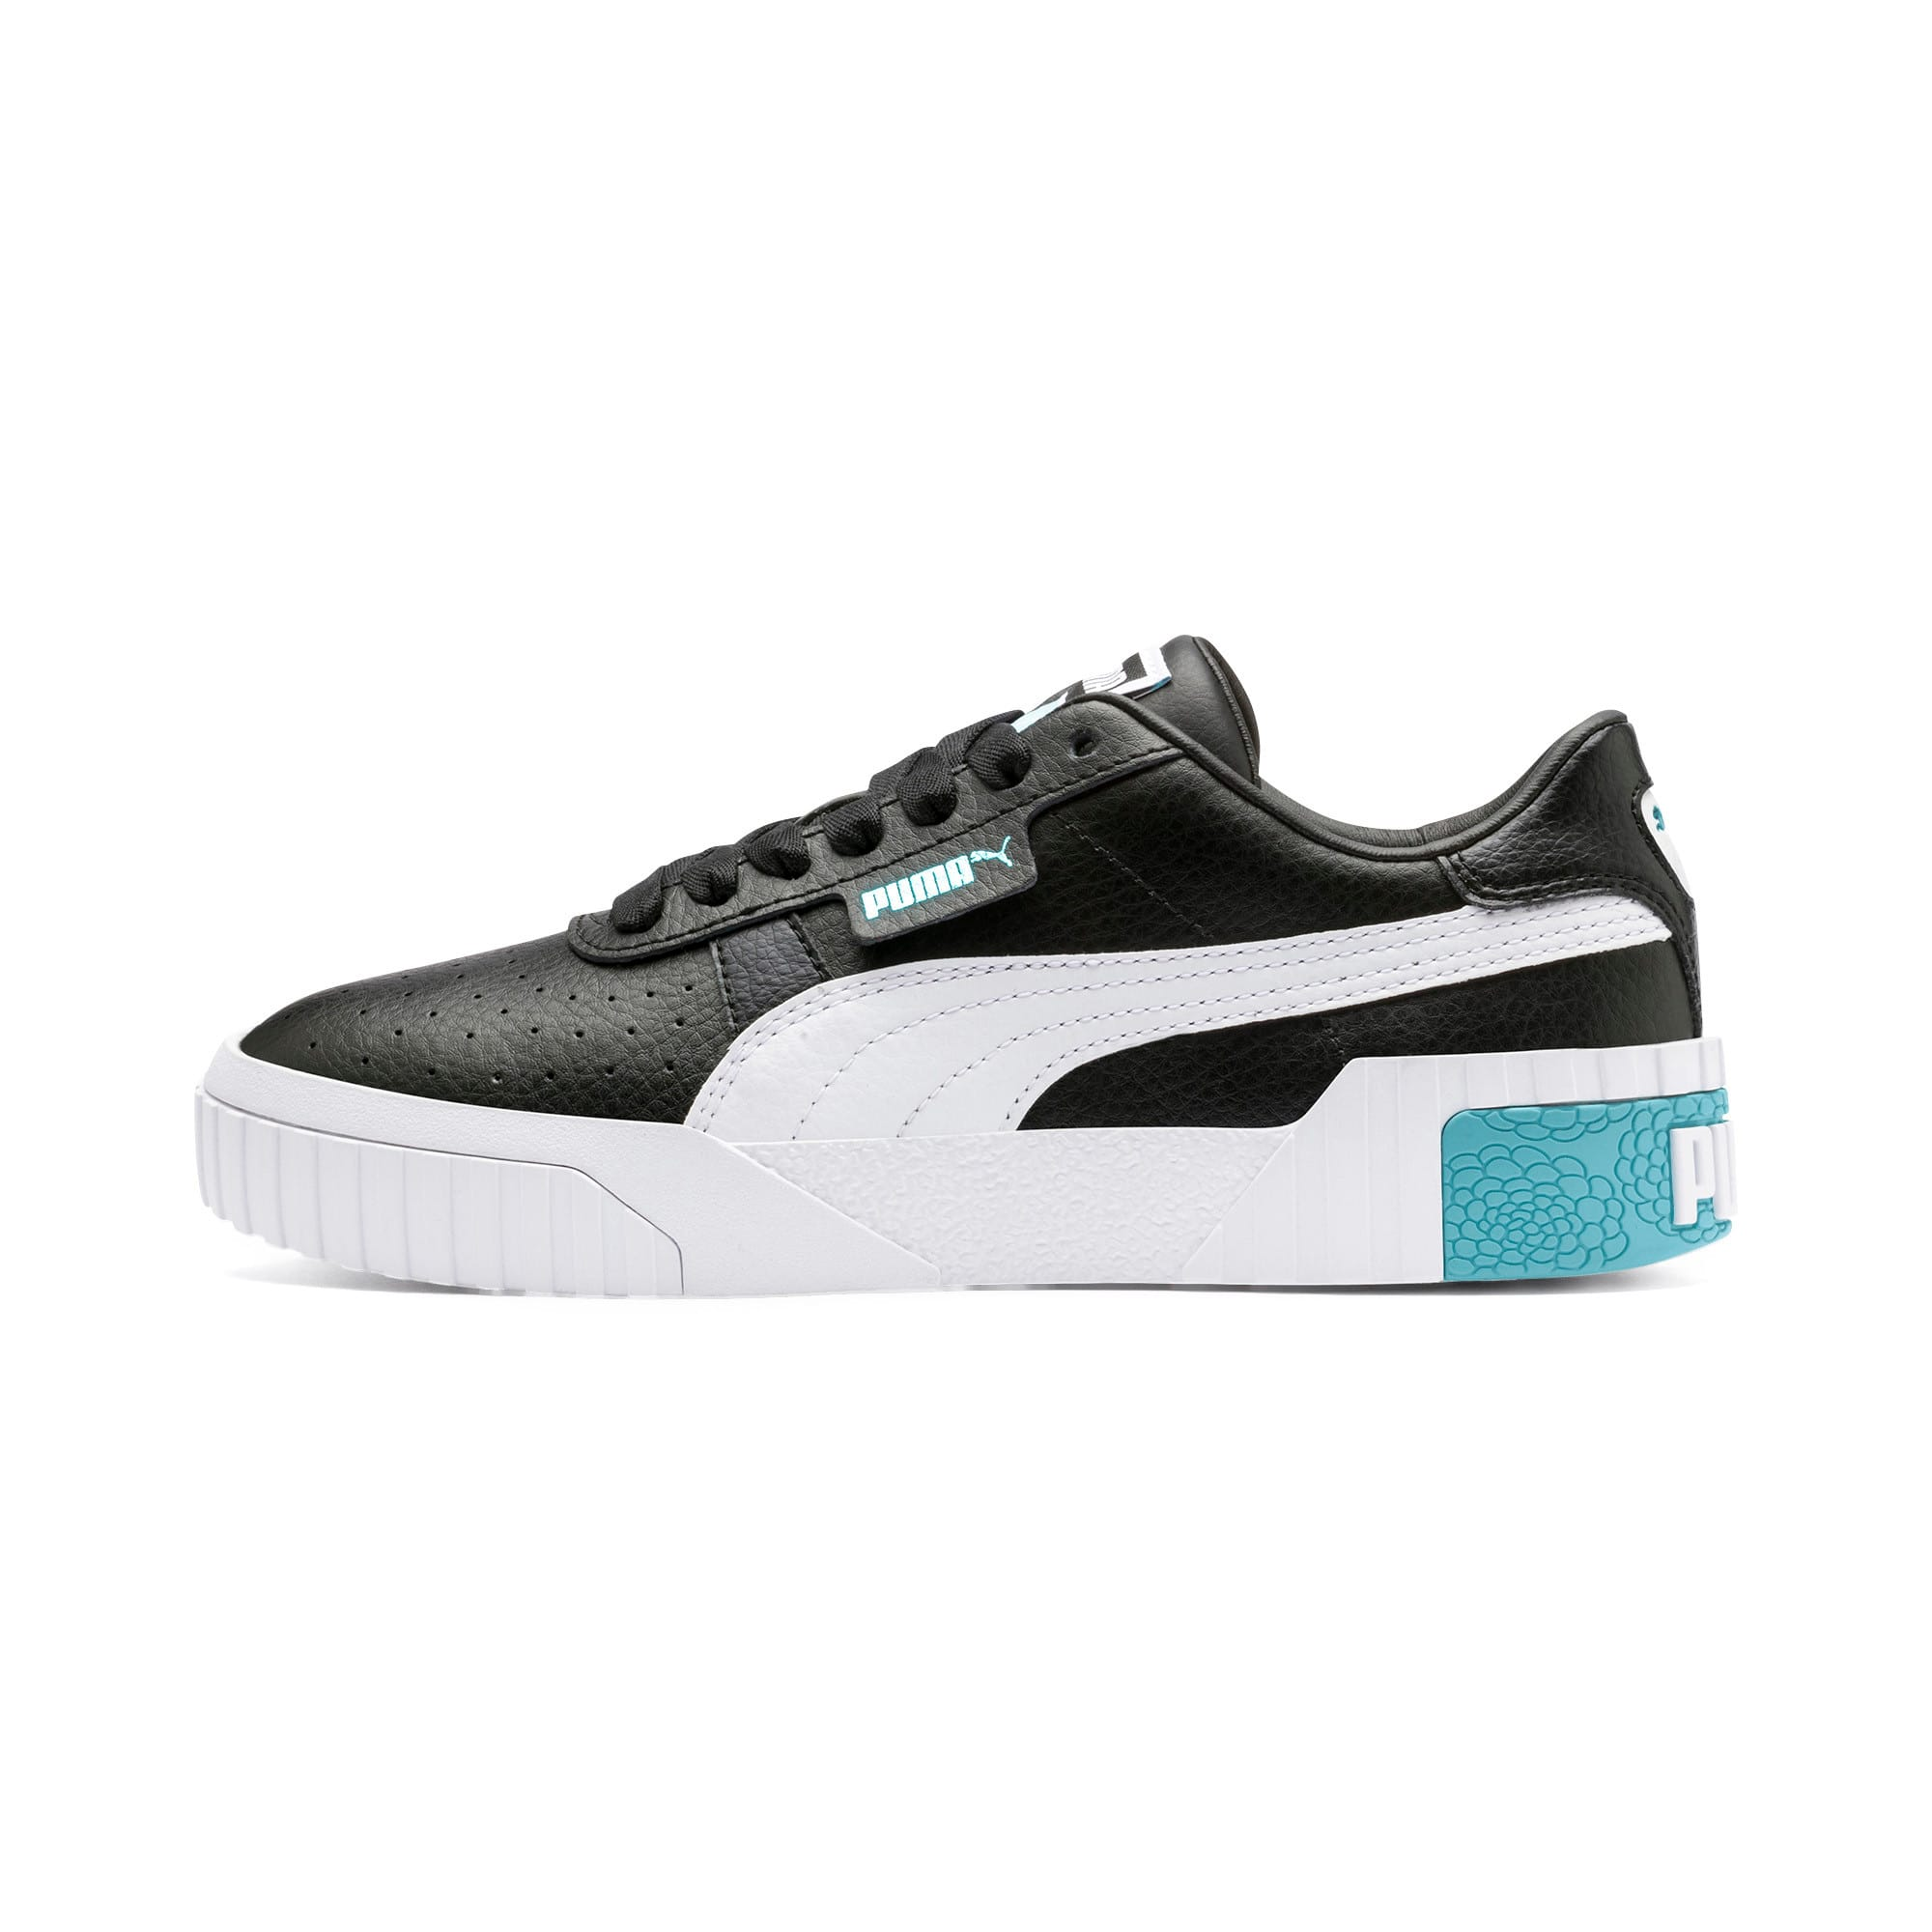 Thumbnail 1 of Cali Youth Trainers, Puma Black-Milky Blue, medium